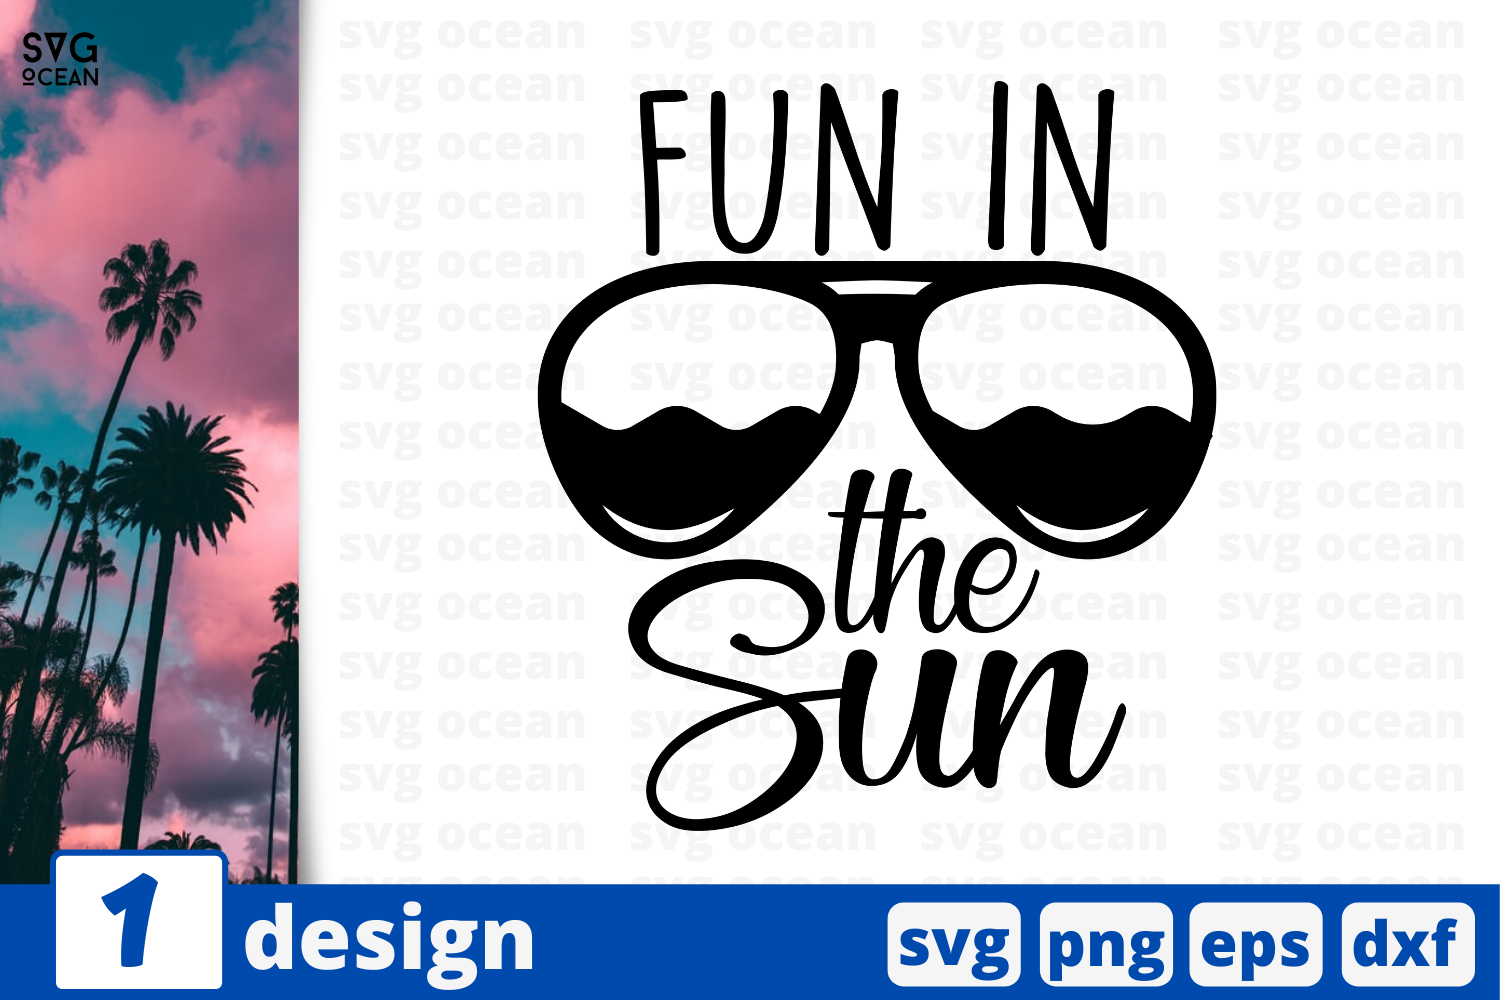 Download Free 1 Fun In The Sun Summer Svg For Cricut Graphic By Svgocean for Cricut Explore, Silhouette and other cutting machines.